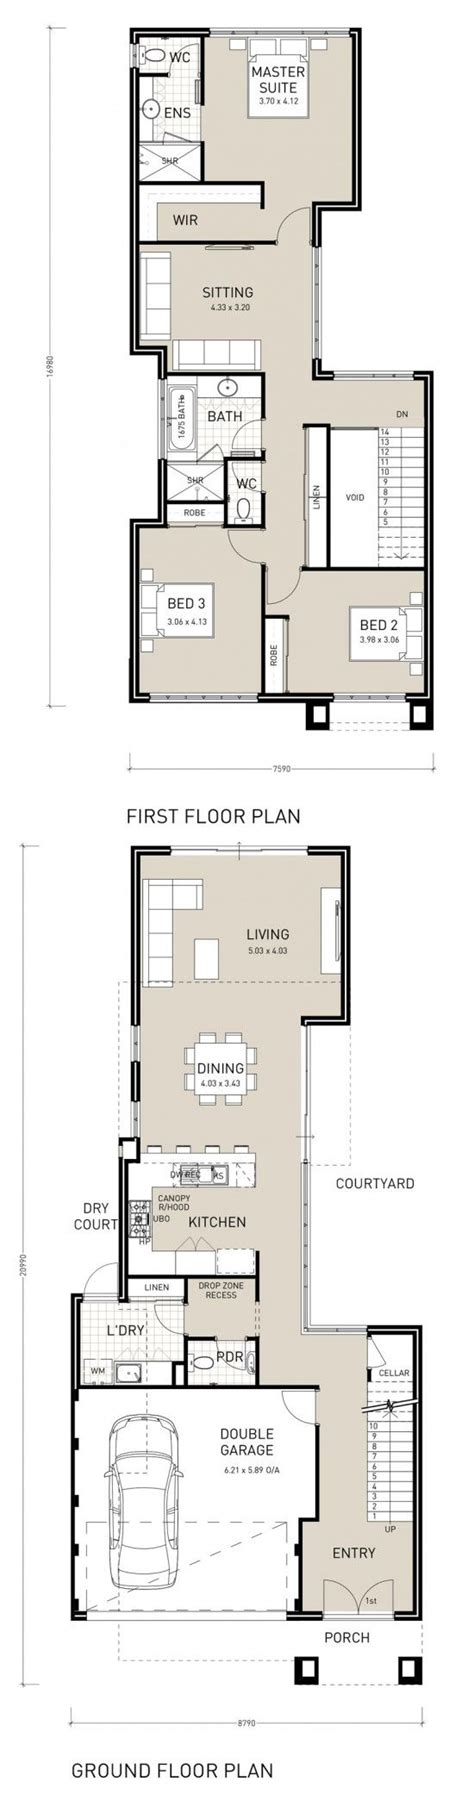 narrow block house plans 18 best images about narrow block plans on pinterest